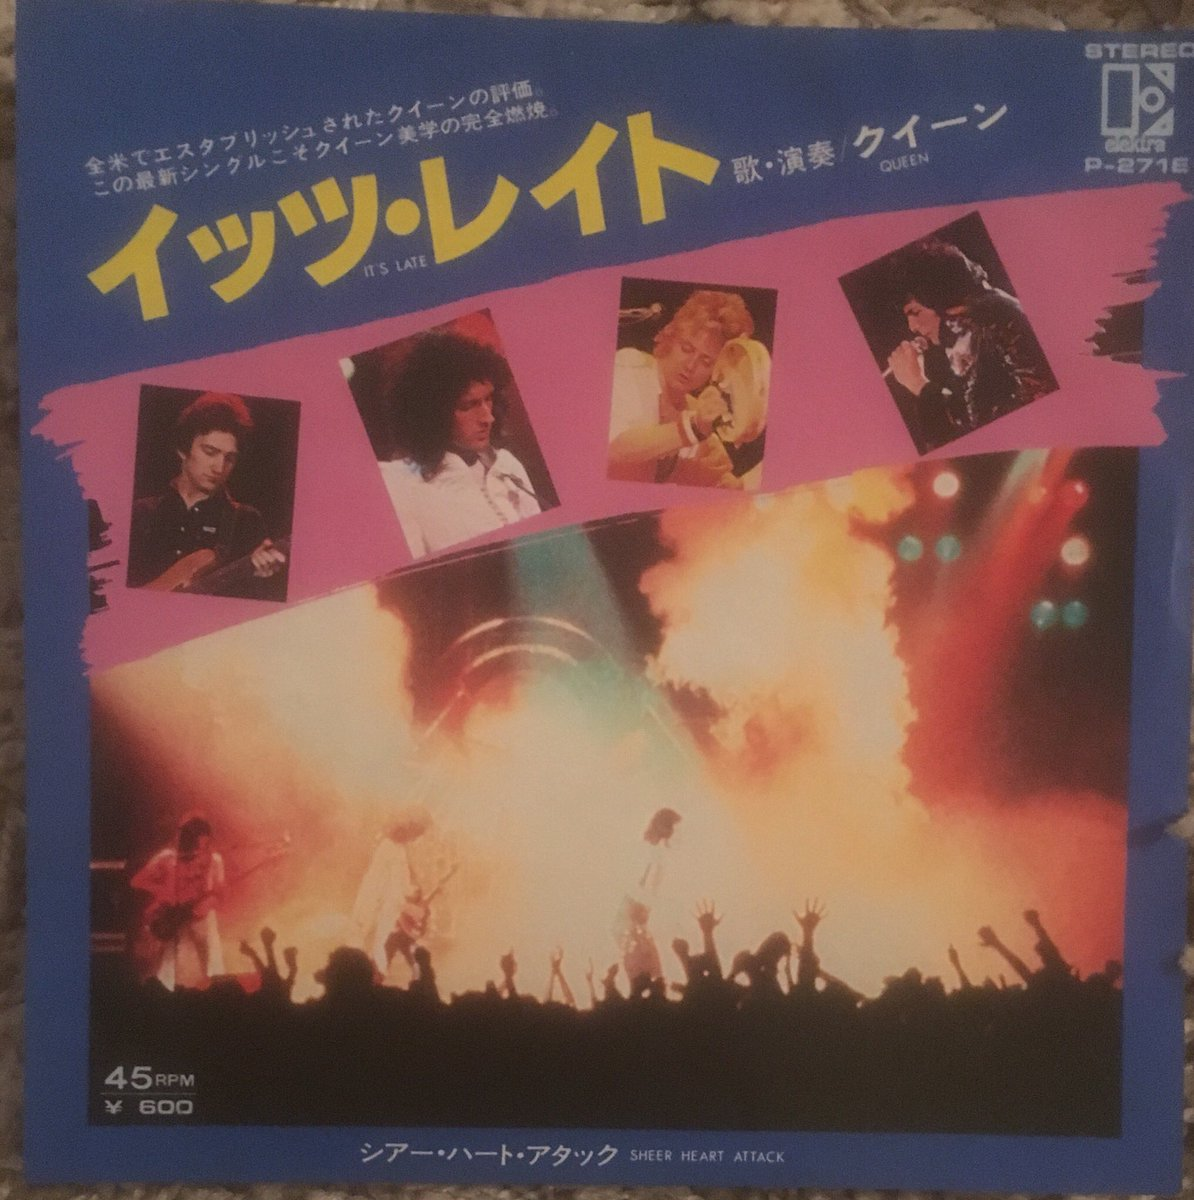 """225/ """"It's Late"""": Japan 7"""" with picture insert and lyric sheet on reverse, b/w Sheer Heart Attack. Released in May '78 and written by Brian this is a hidden gem on the News of the World #NotW40 #Queen #FreddieMercury #BrianMay #JohnDeacon #RogerTaylor<br>http://pic.twitter.com/sgMG1bOkqX"""